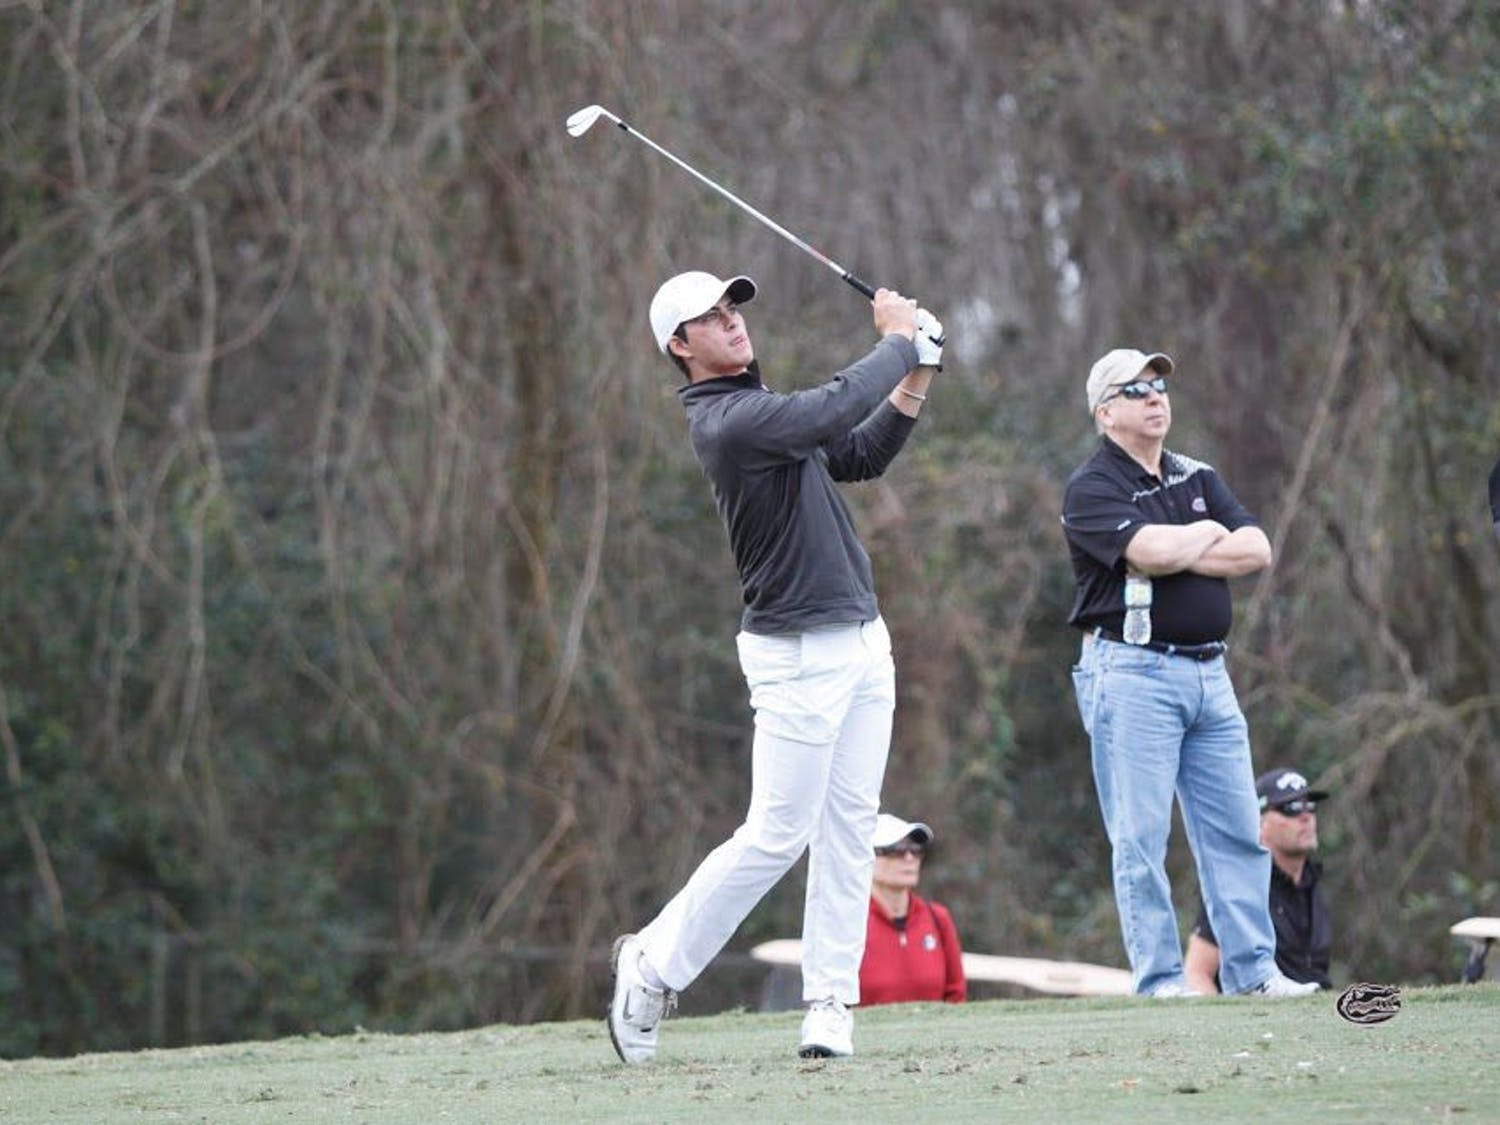 UF's Gordon Neale hits a shot during the SunTrust Gator Invitational on Feb. 18, 2017, at the Mark Bostic Golf Course.